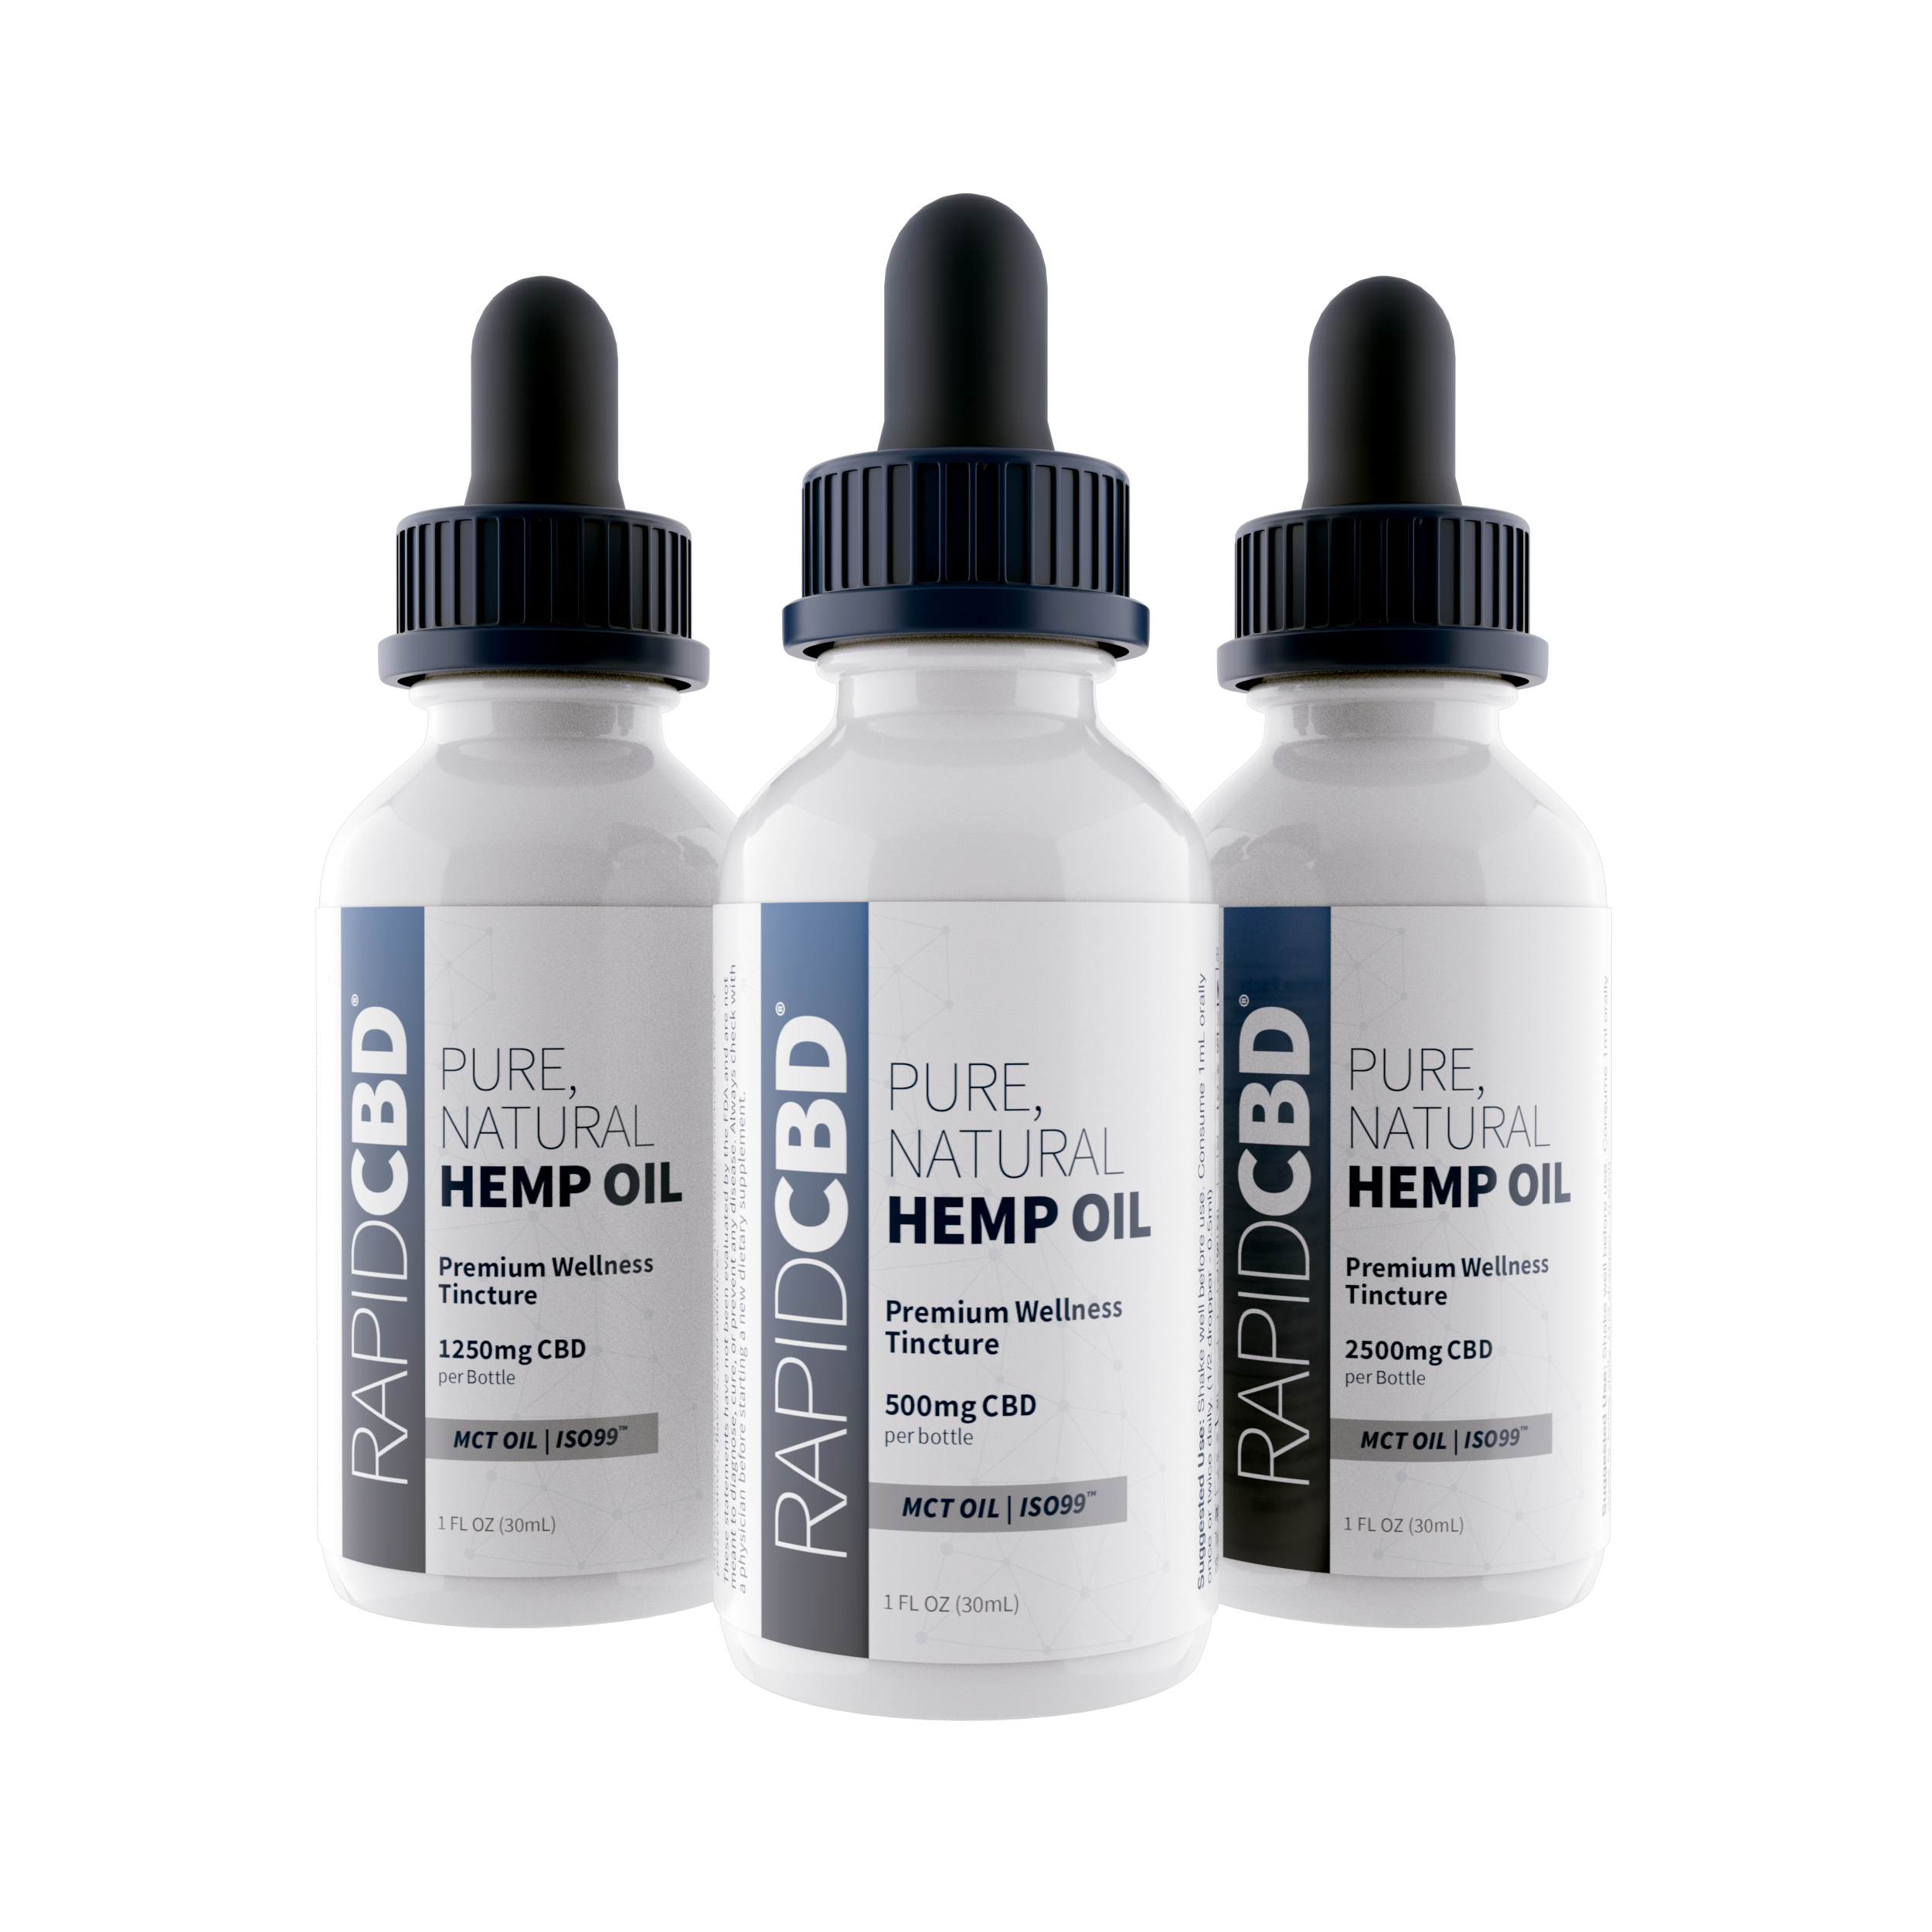 RapidCBD Pure, Natural Hemp Oil Tincture